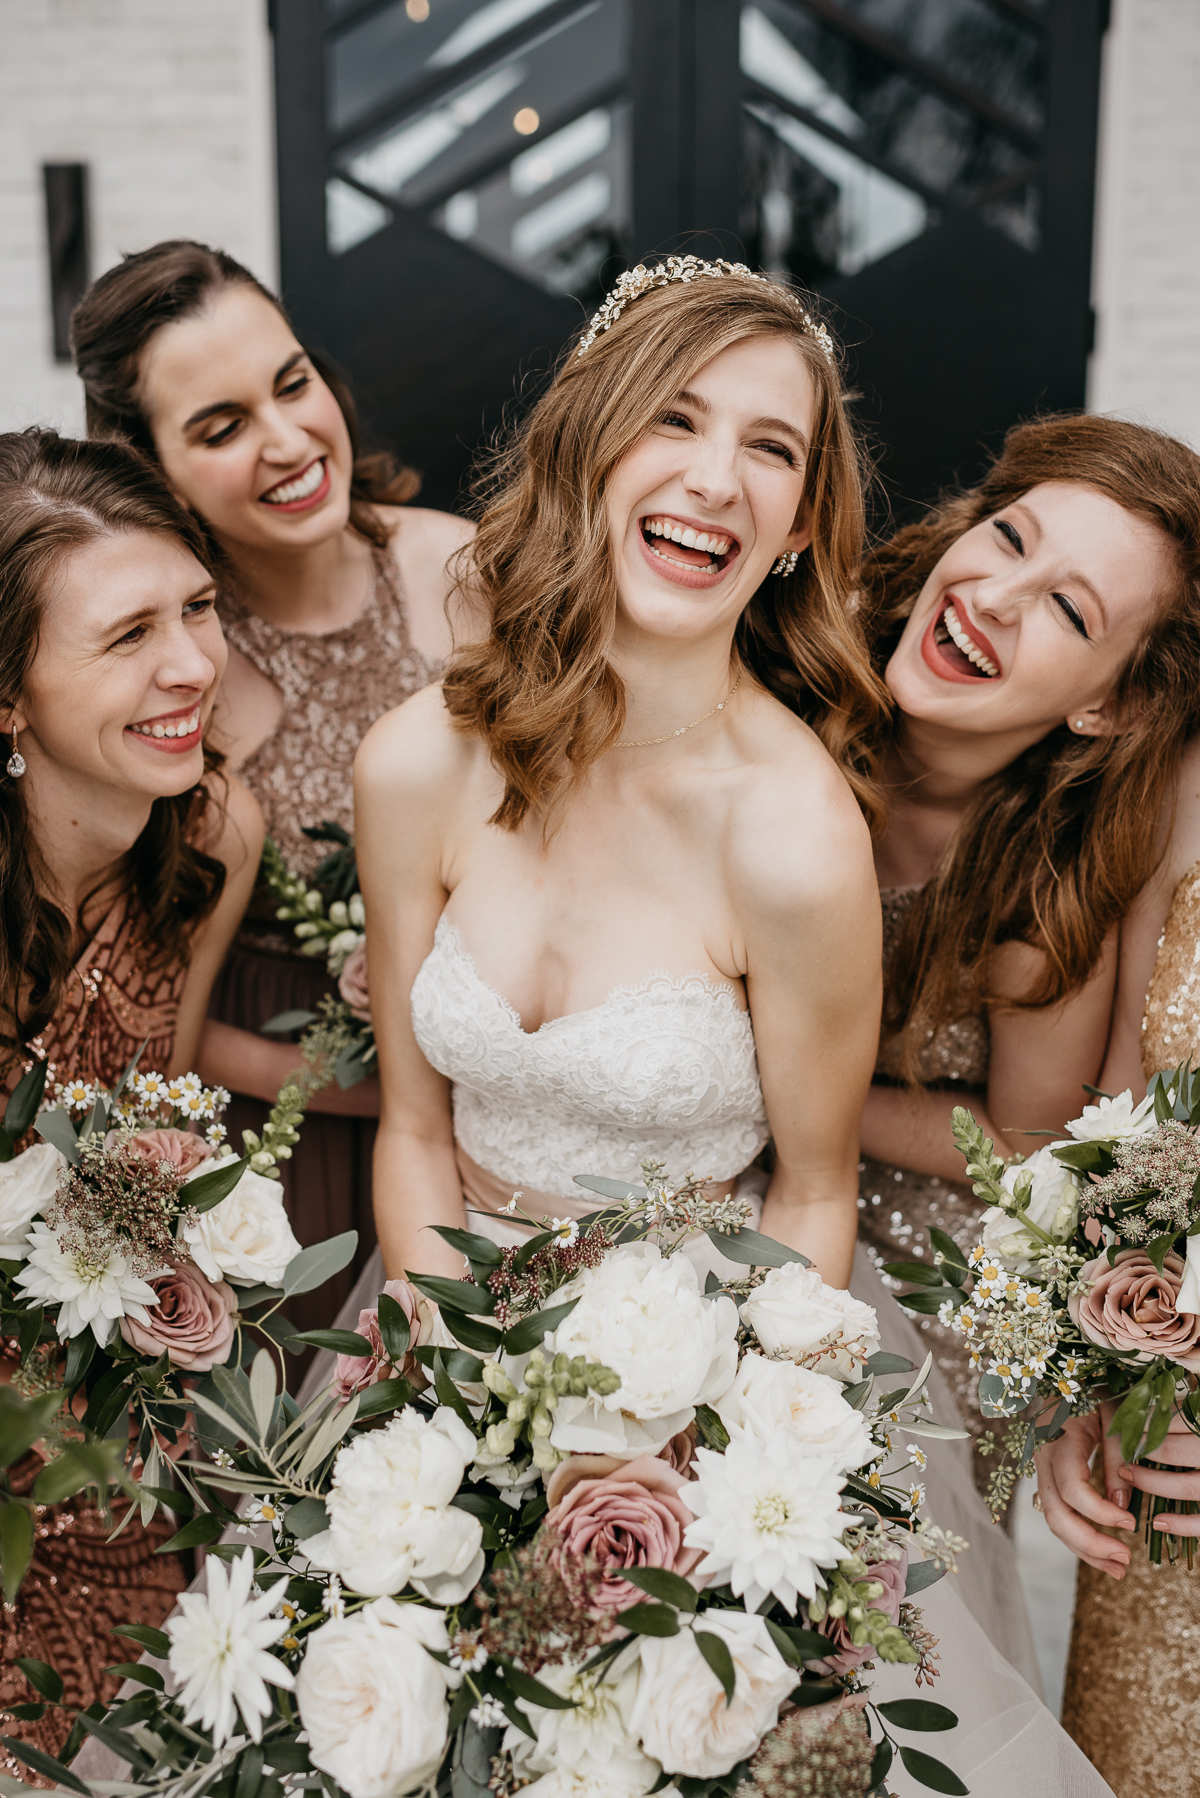 Modern elegant carefree nature wedding at Jennings Trace wedding venue in Conroe Texas camera shi photography mismatched bridesmaids dresses